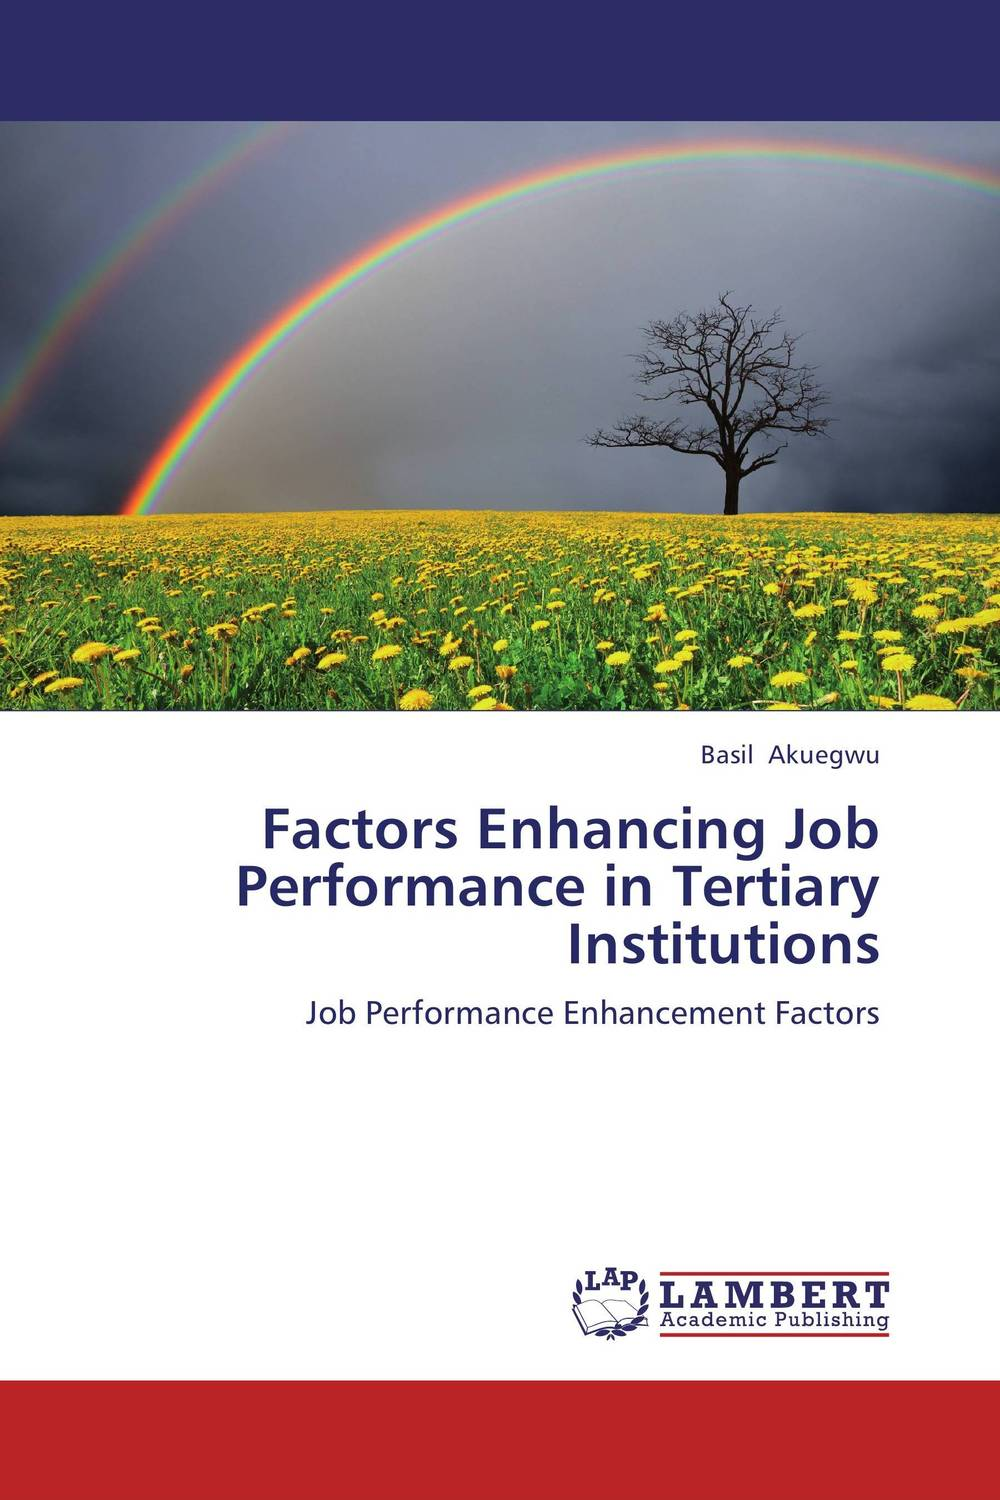 Factors Enhancing Job Performance in Tertiary Institutions  fritz ilongo workplace bullying as psychological violence in tertiary institutions